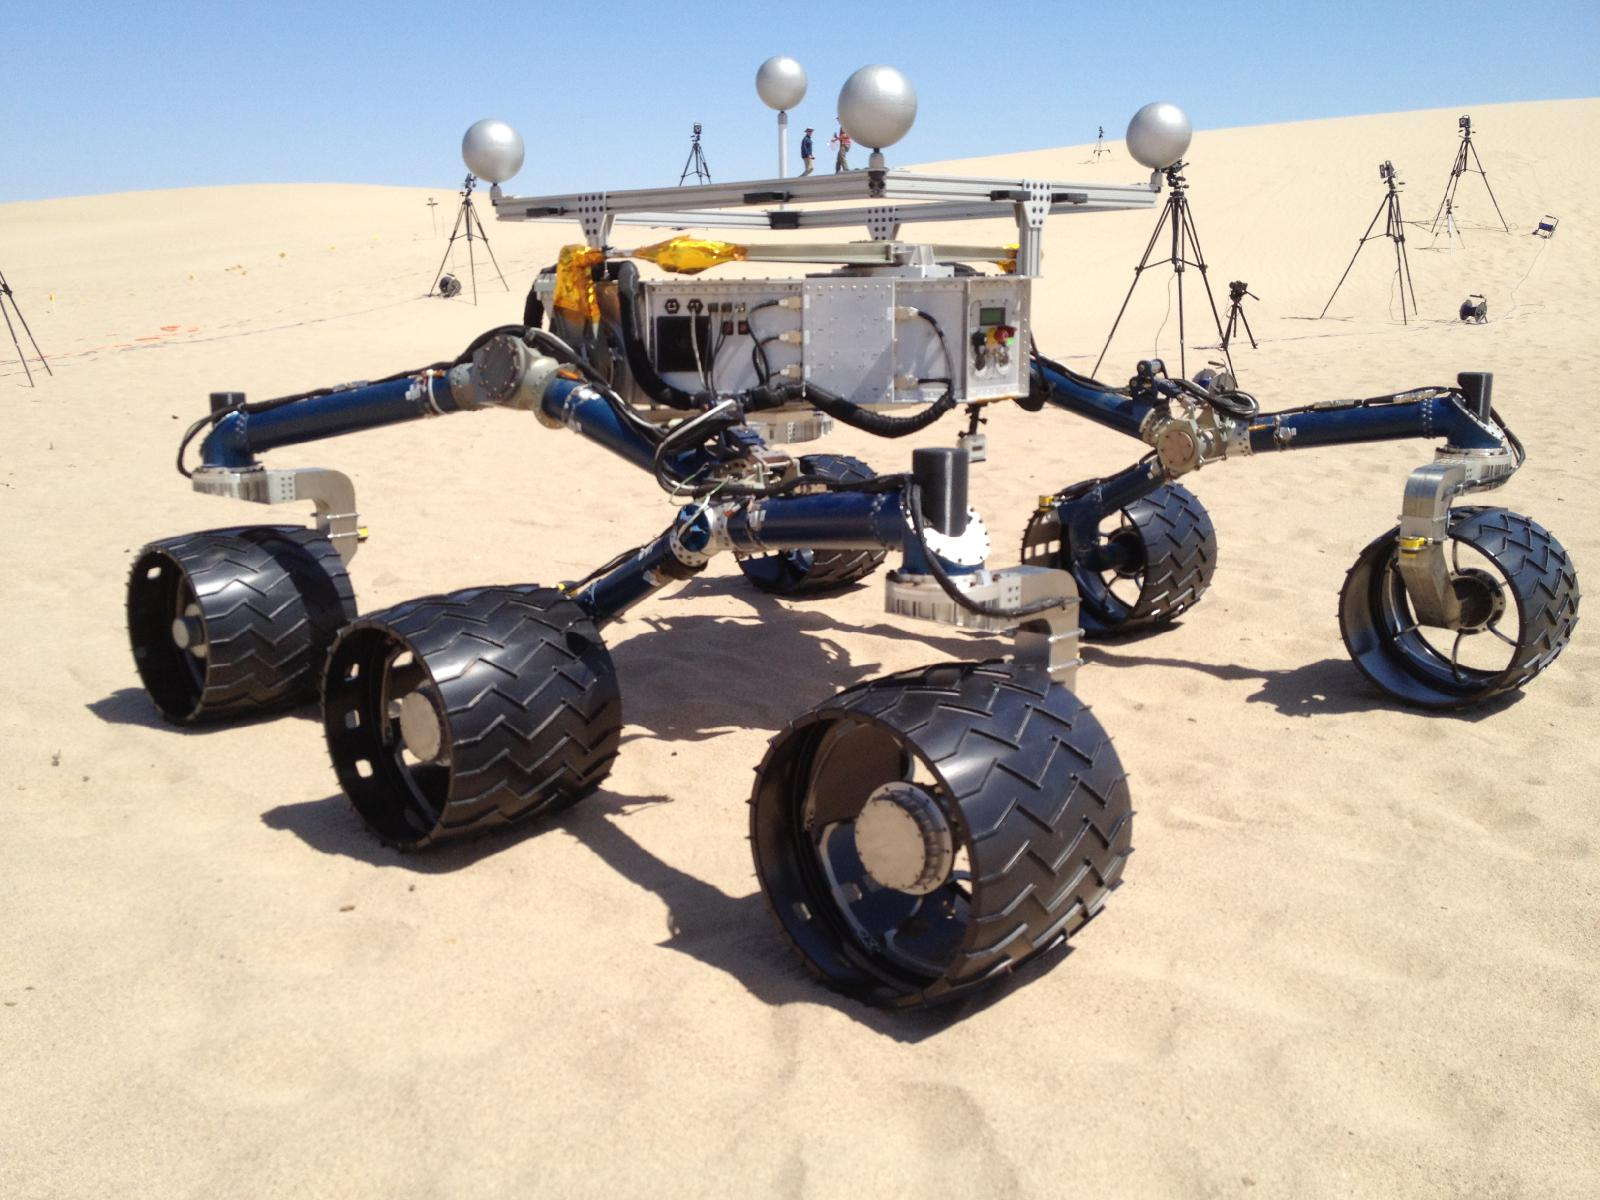 Curiosity Mars Rover Mockup in Death Valley